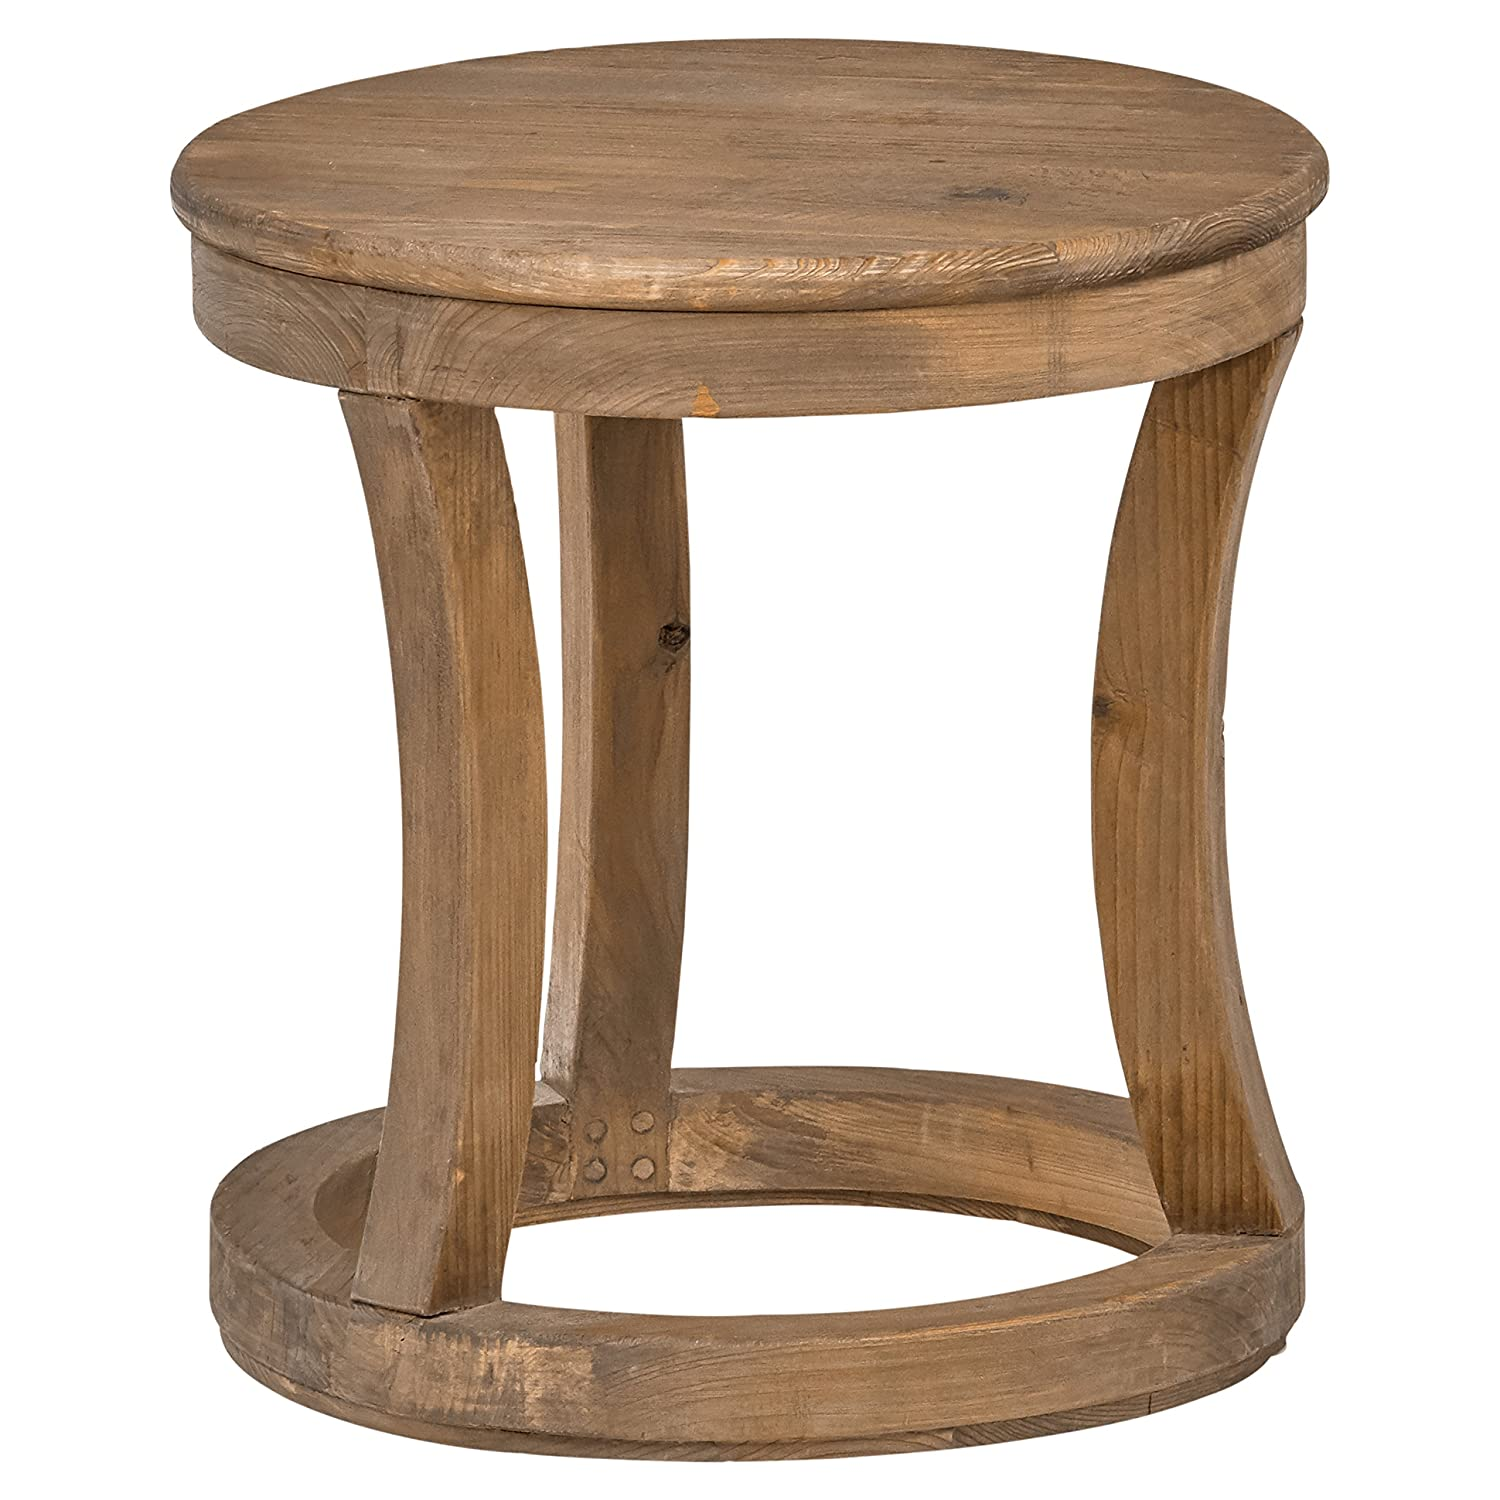 "Stone & Beam Modern Rustic Reclaimed Elm Side Table, 16.9""W, Natural"